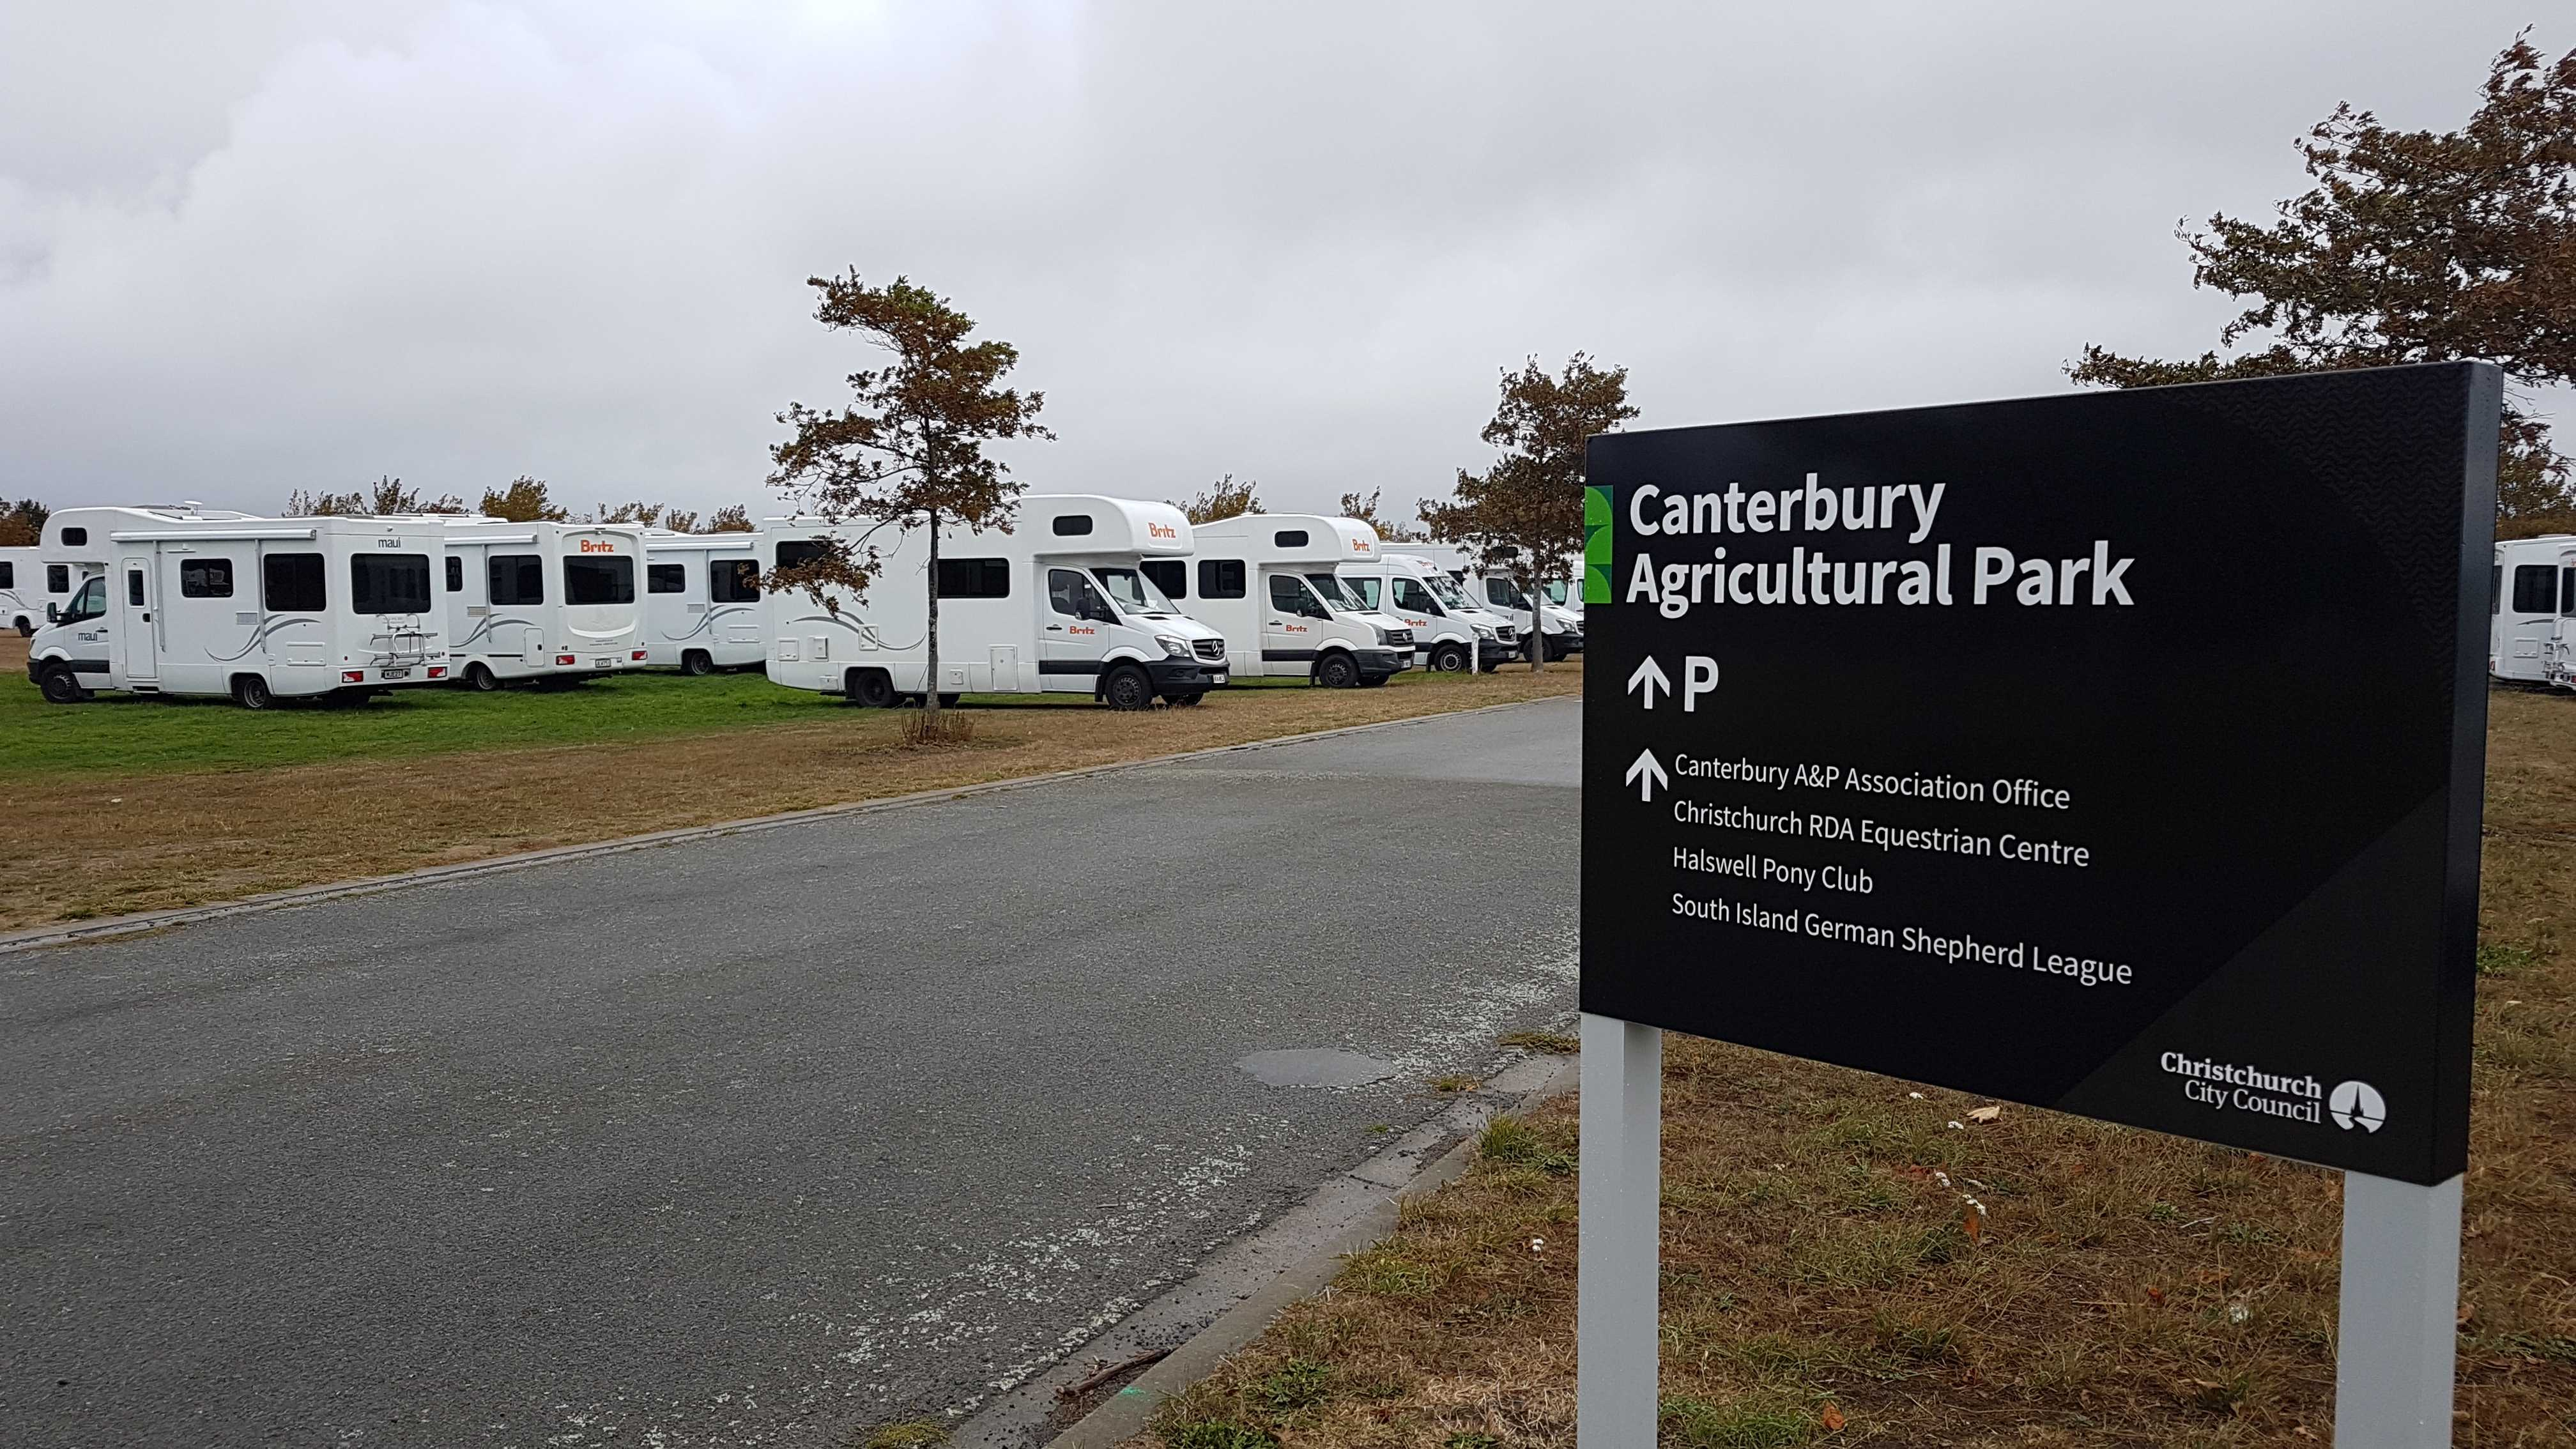 Canterbury Agricultural Park. Photo: Geoff Sloan